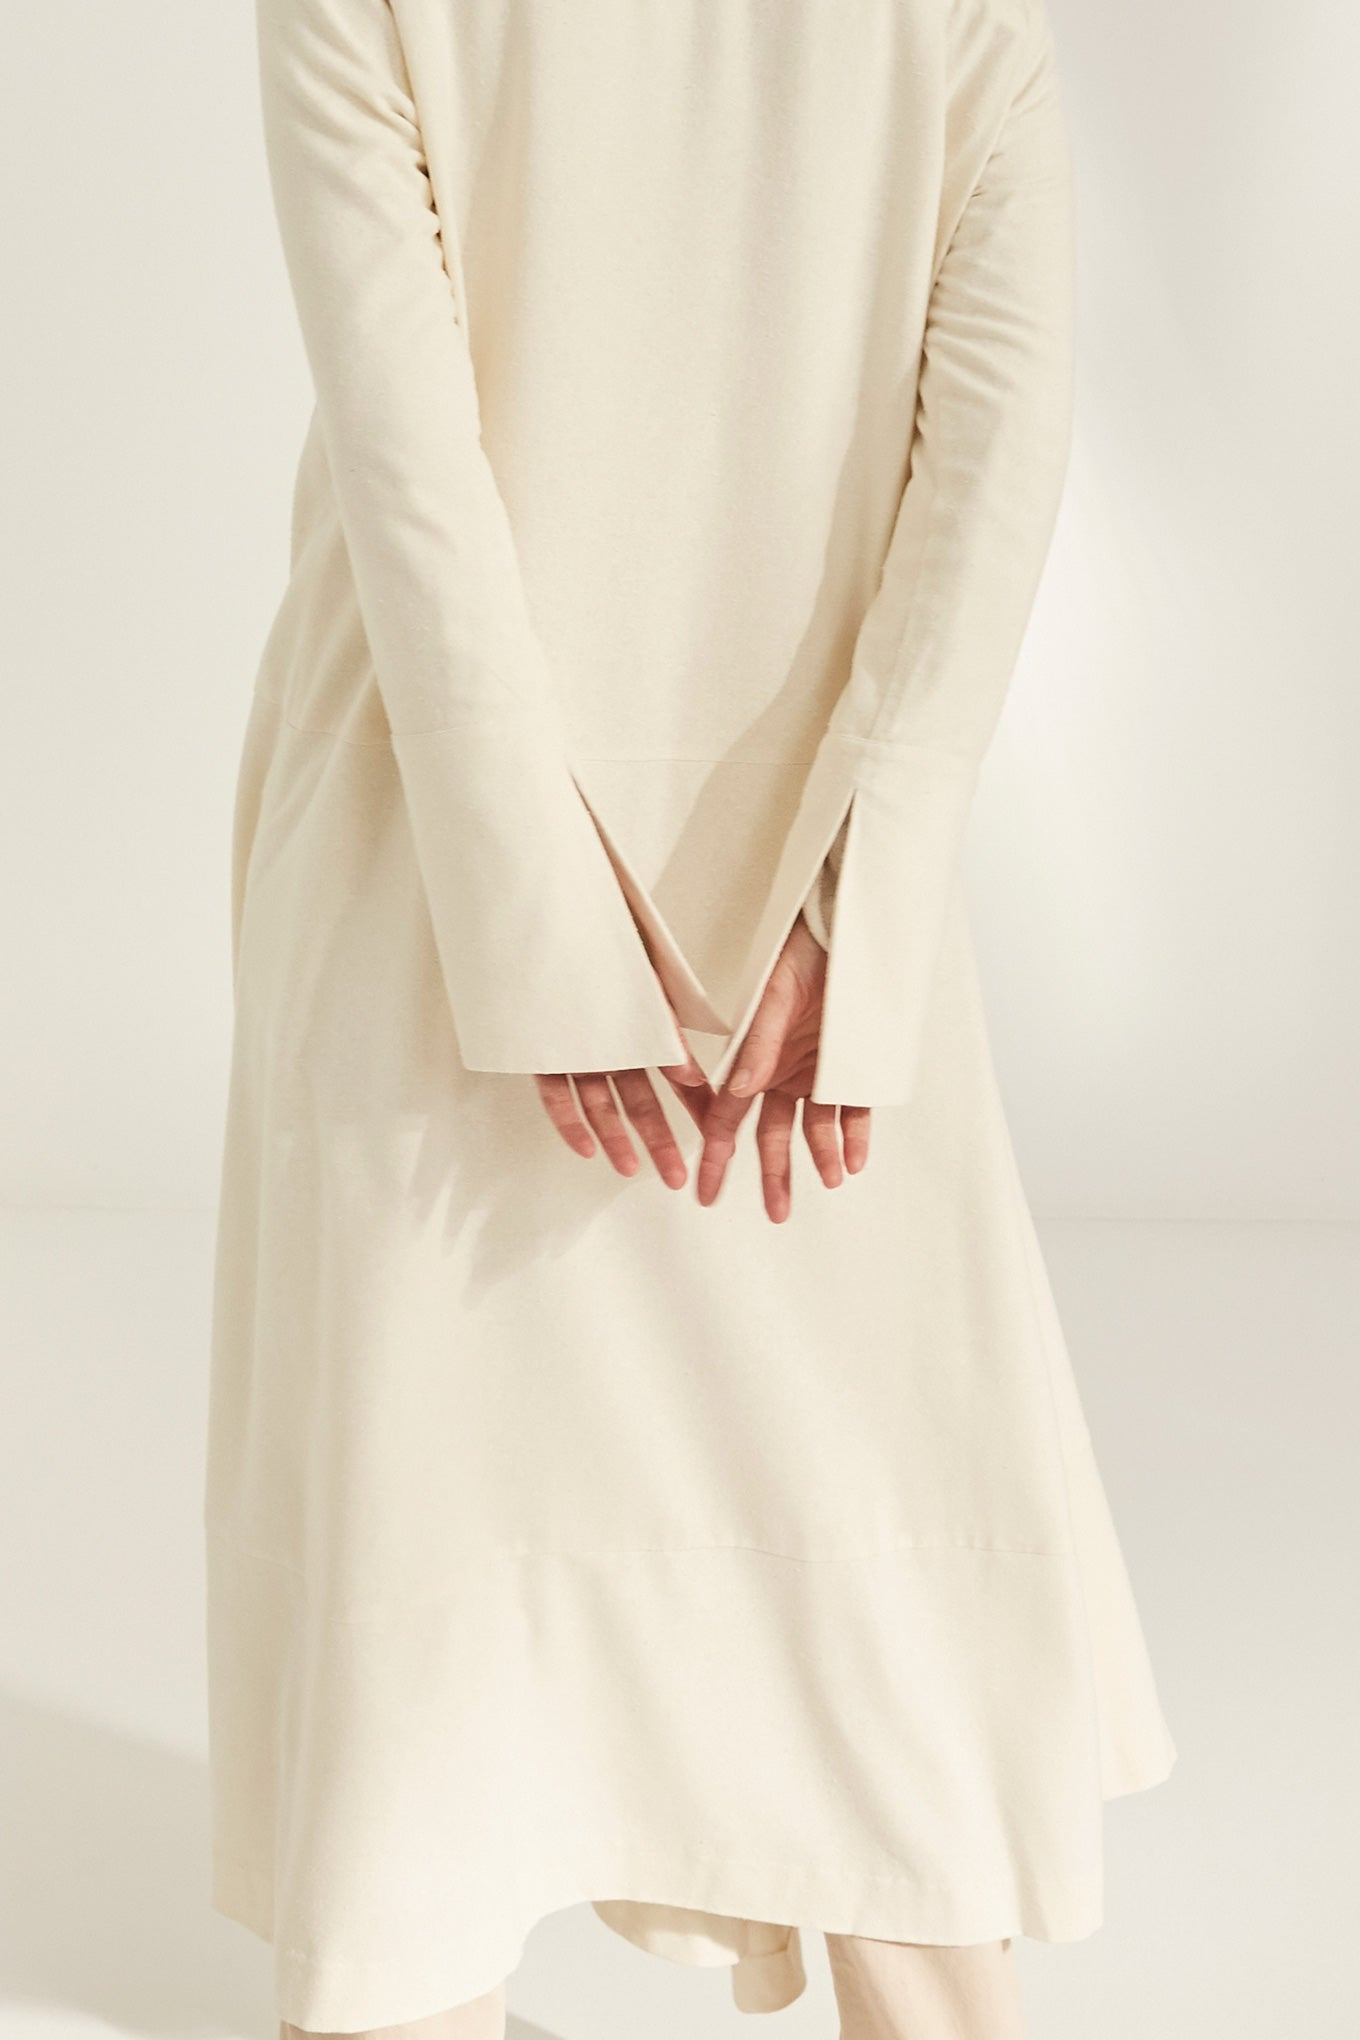 KAI DRESS - OFF WHITE - RAW SILK